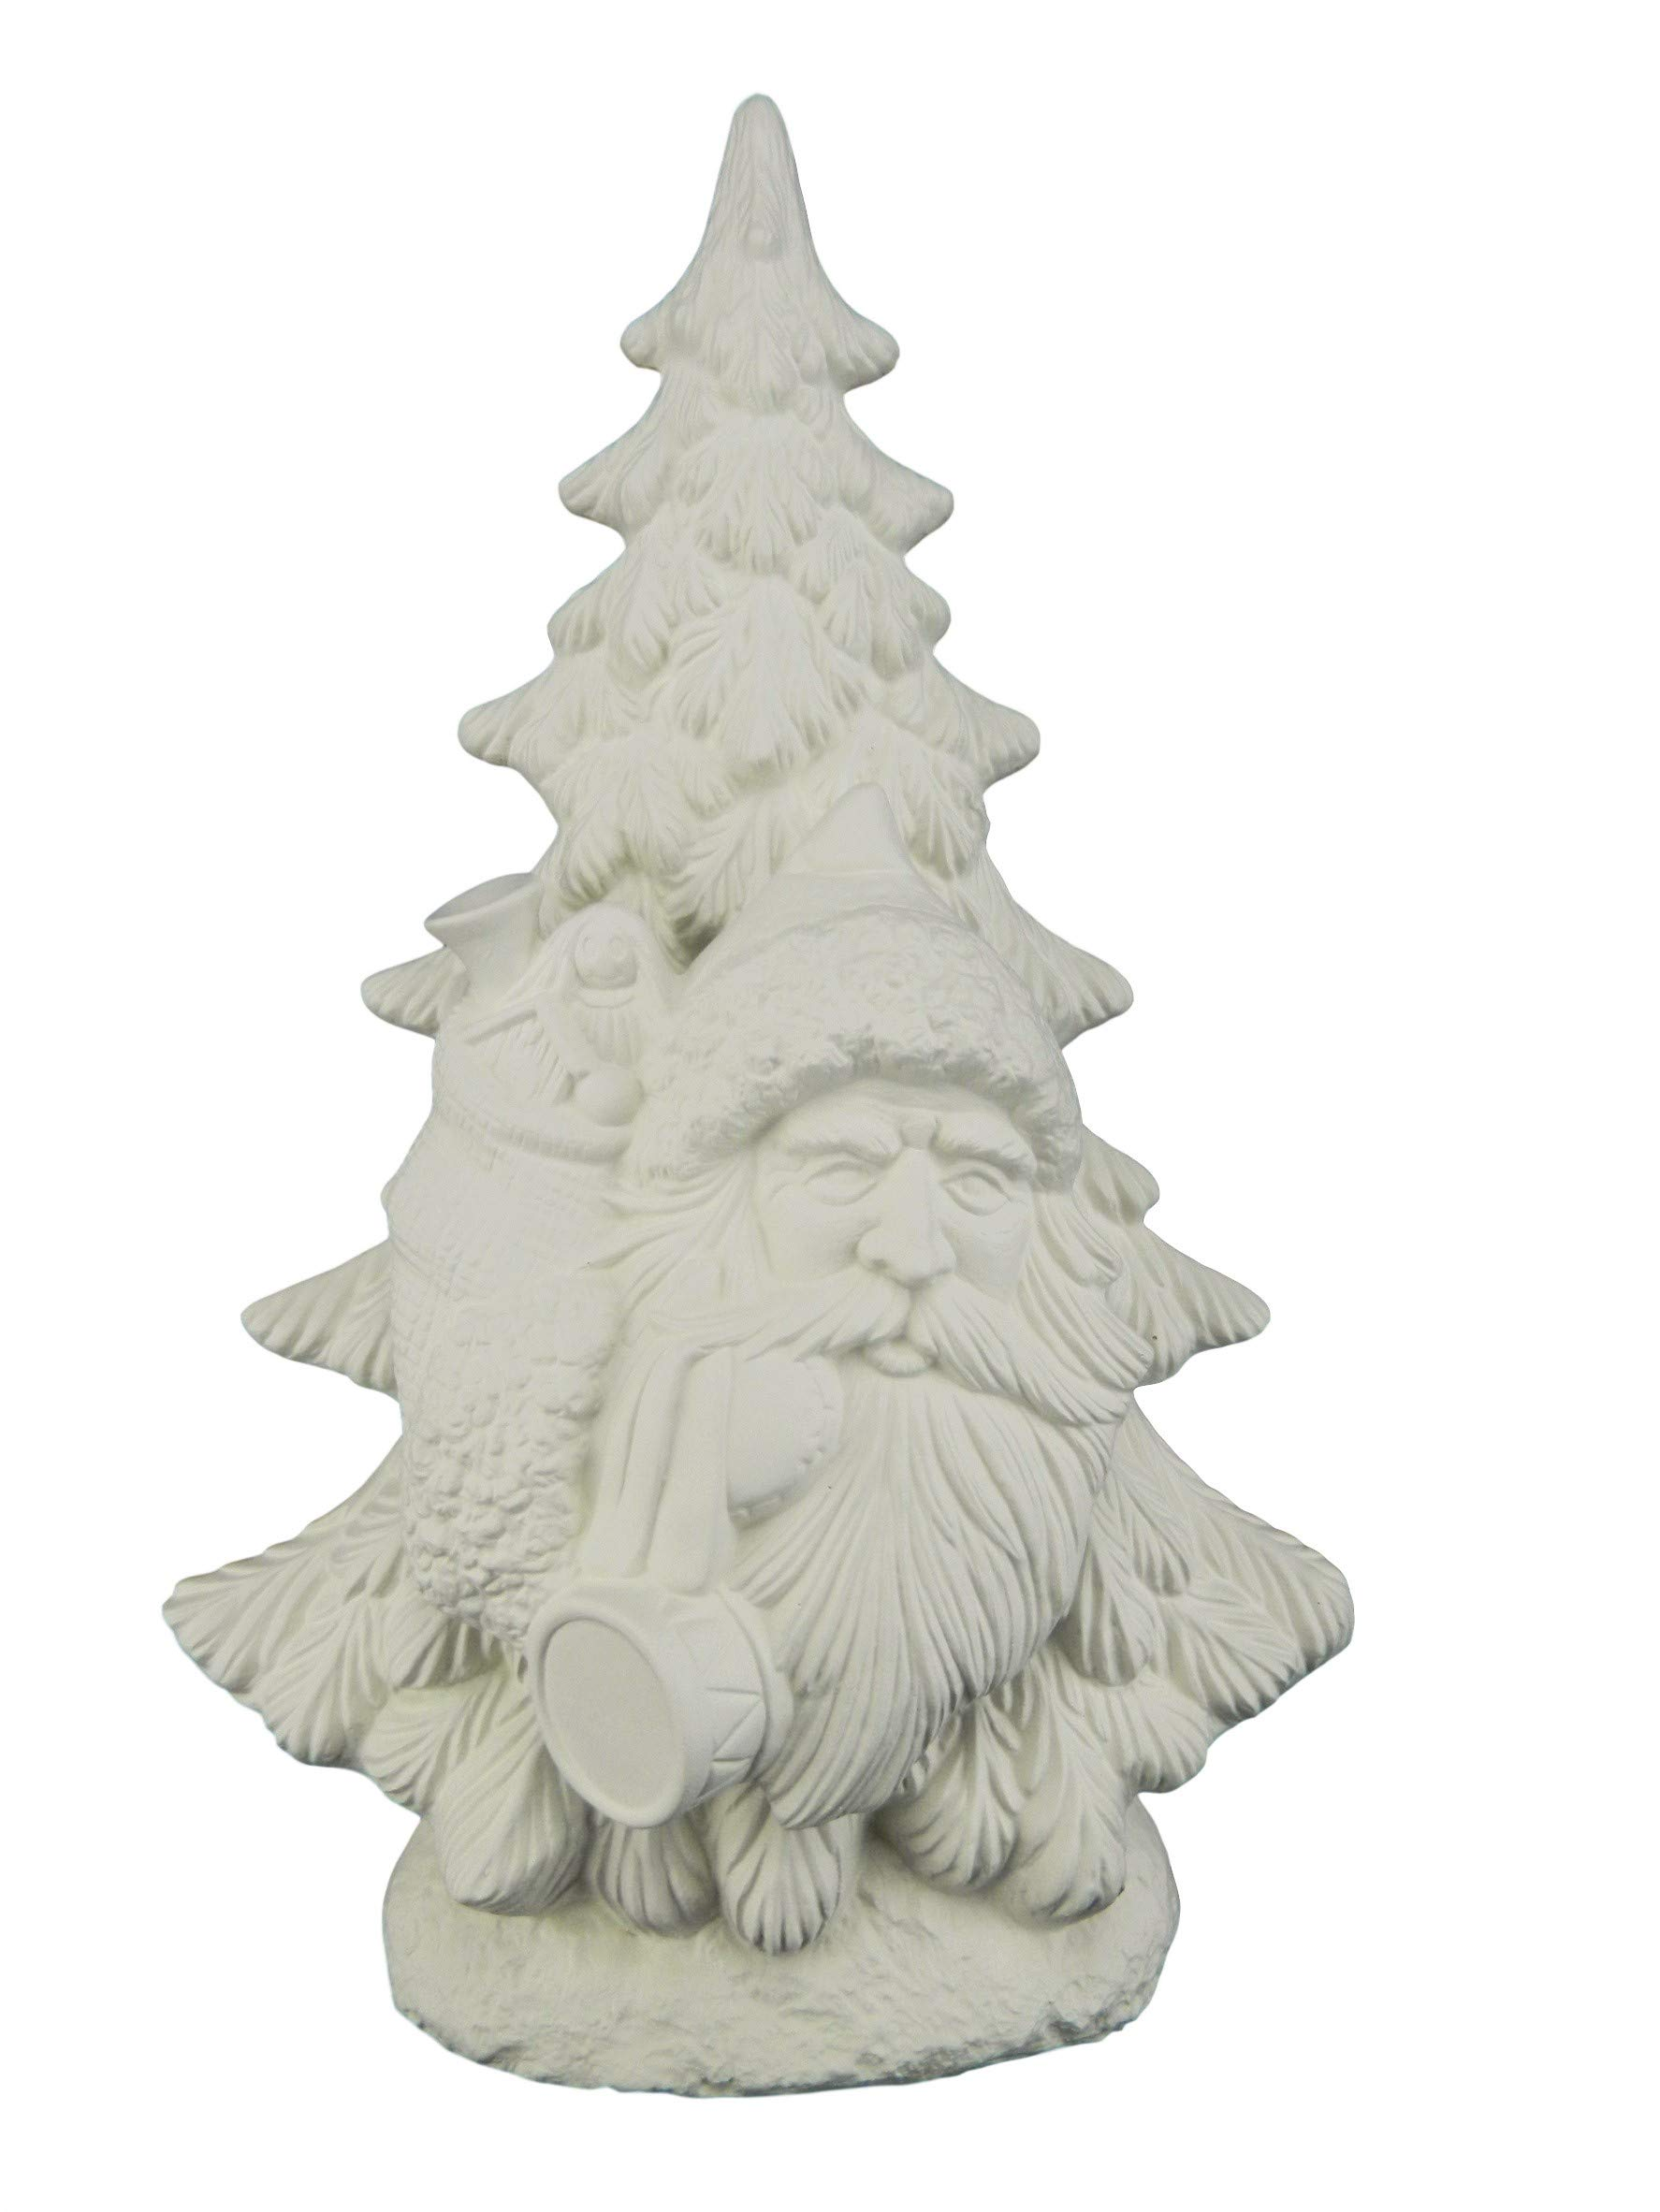 Mantle Christmas Tree, 15 Inch - Ready to Paint Ceramic Bisque (w Old World Santa Insert) by Ceramics In Montana